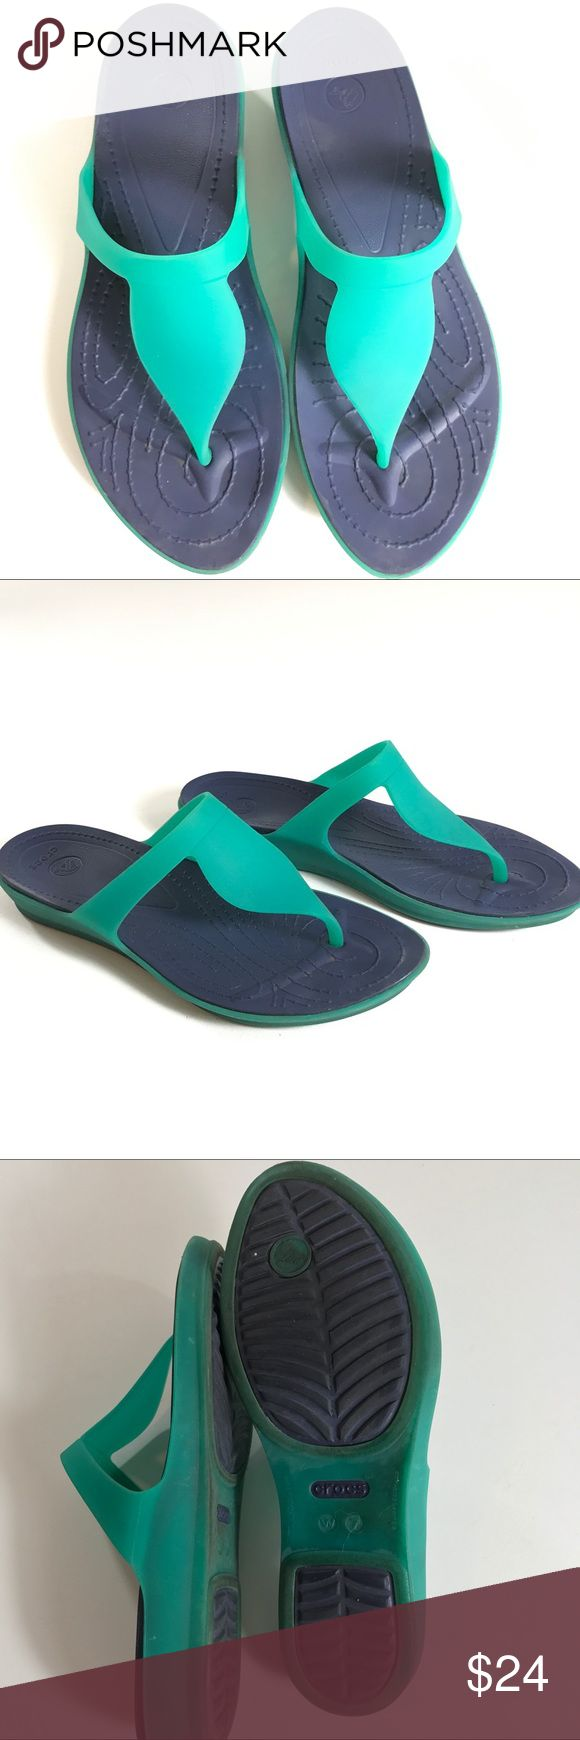 Women's Crocs Flip Flop Thong Black Sandals  Sz. 7 Very Good preowned shape see photos   Women's Crocs Flip Flop Thong Black Sandals  Sz. 7 Blue Green LightWeight CROCS Shoes Sandals